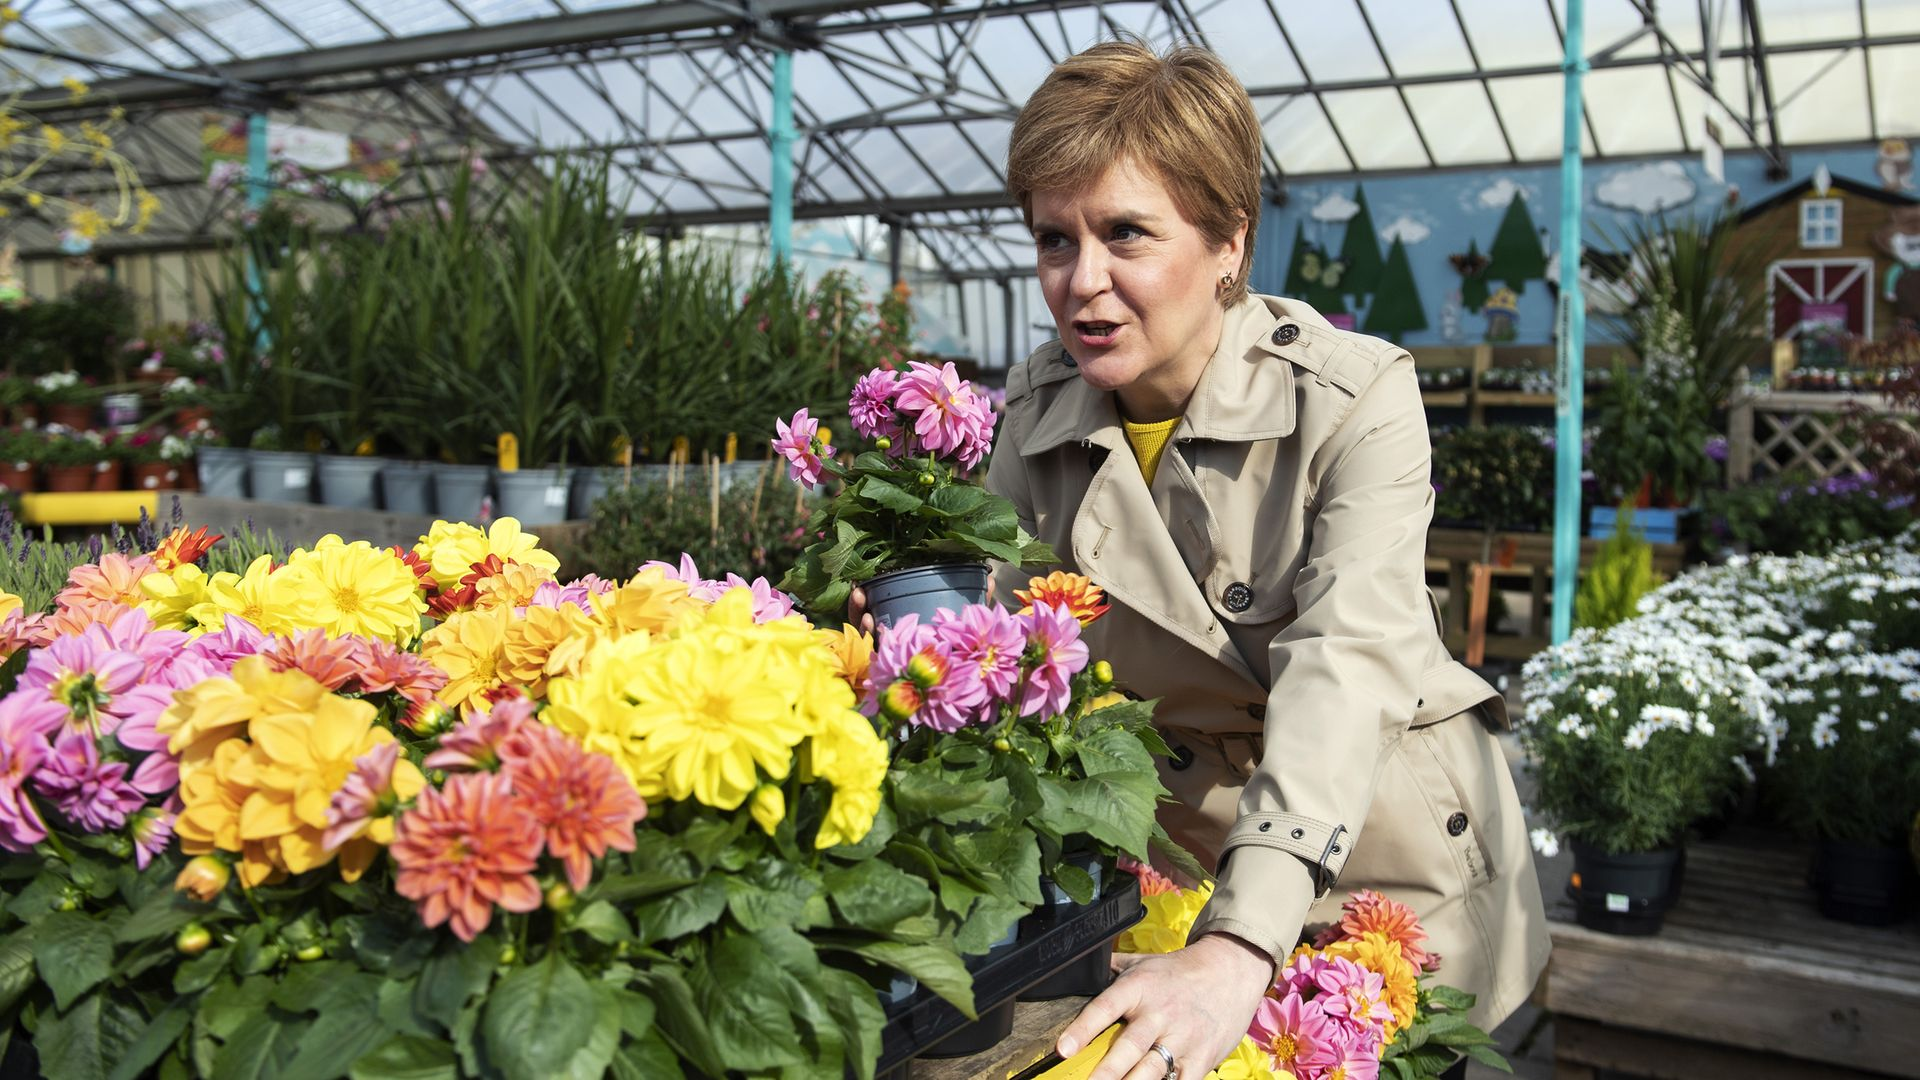 Scotland's first minister and leader of the Scottish National Party (SNP), Nicola Sturgeon during a visit to Rouken Glen Garden Centre in Giffnock, while campaigning for the Scottish parliamentary election - Credit: PA